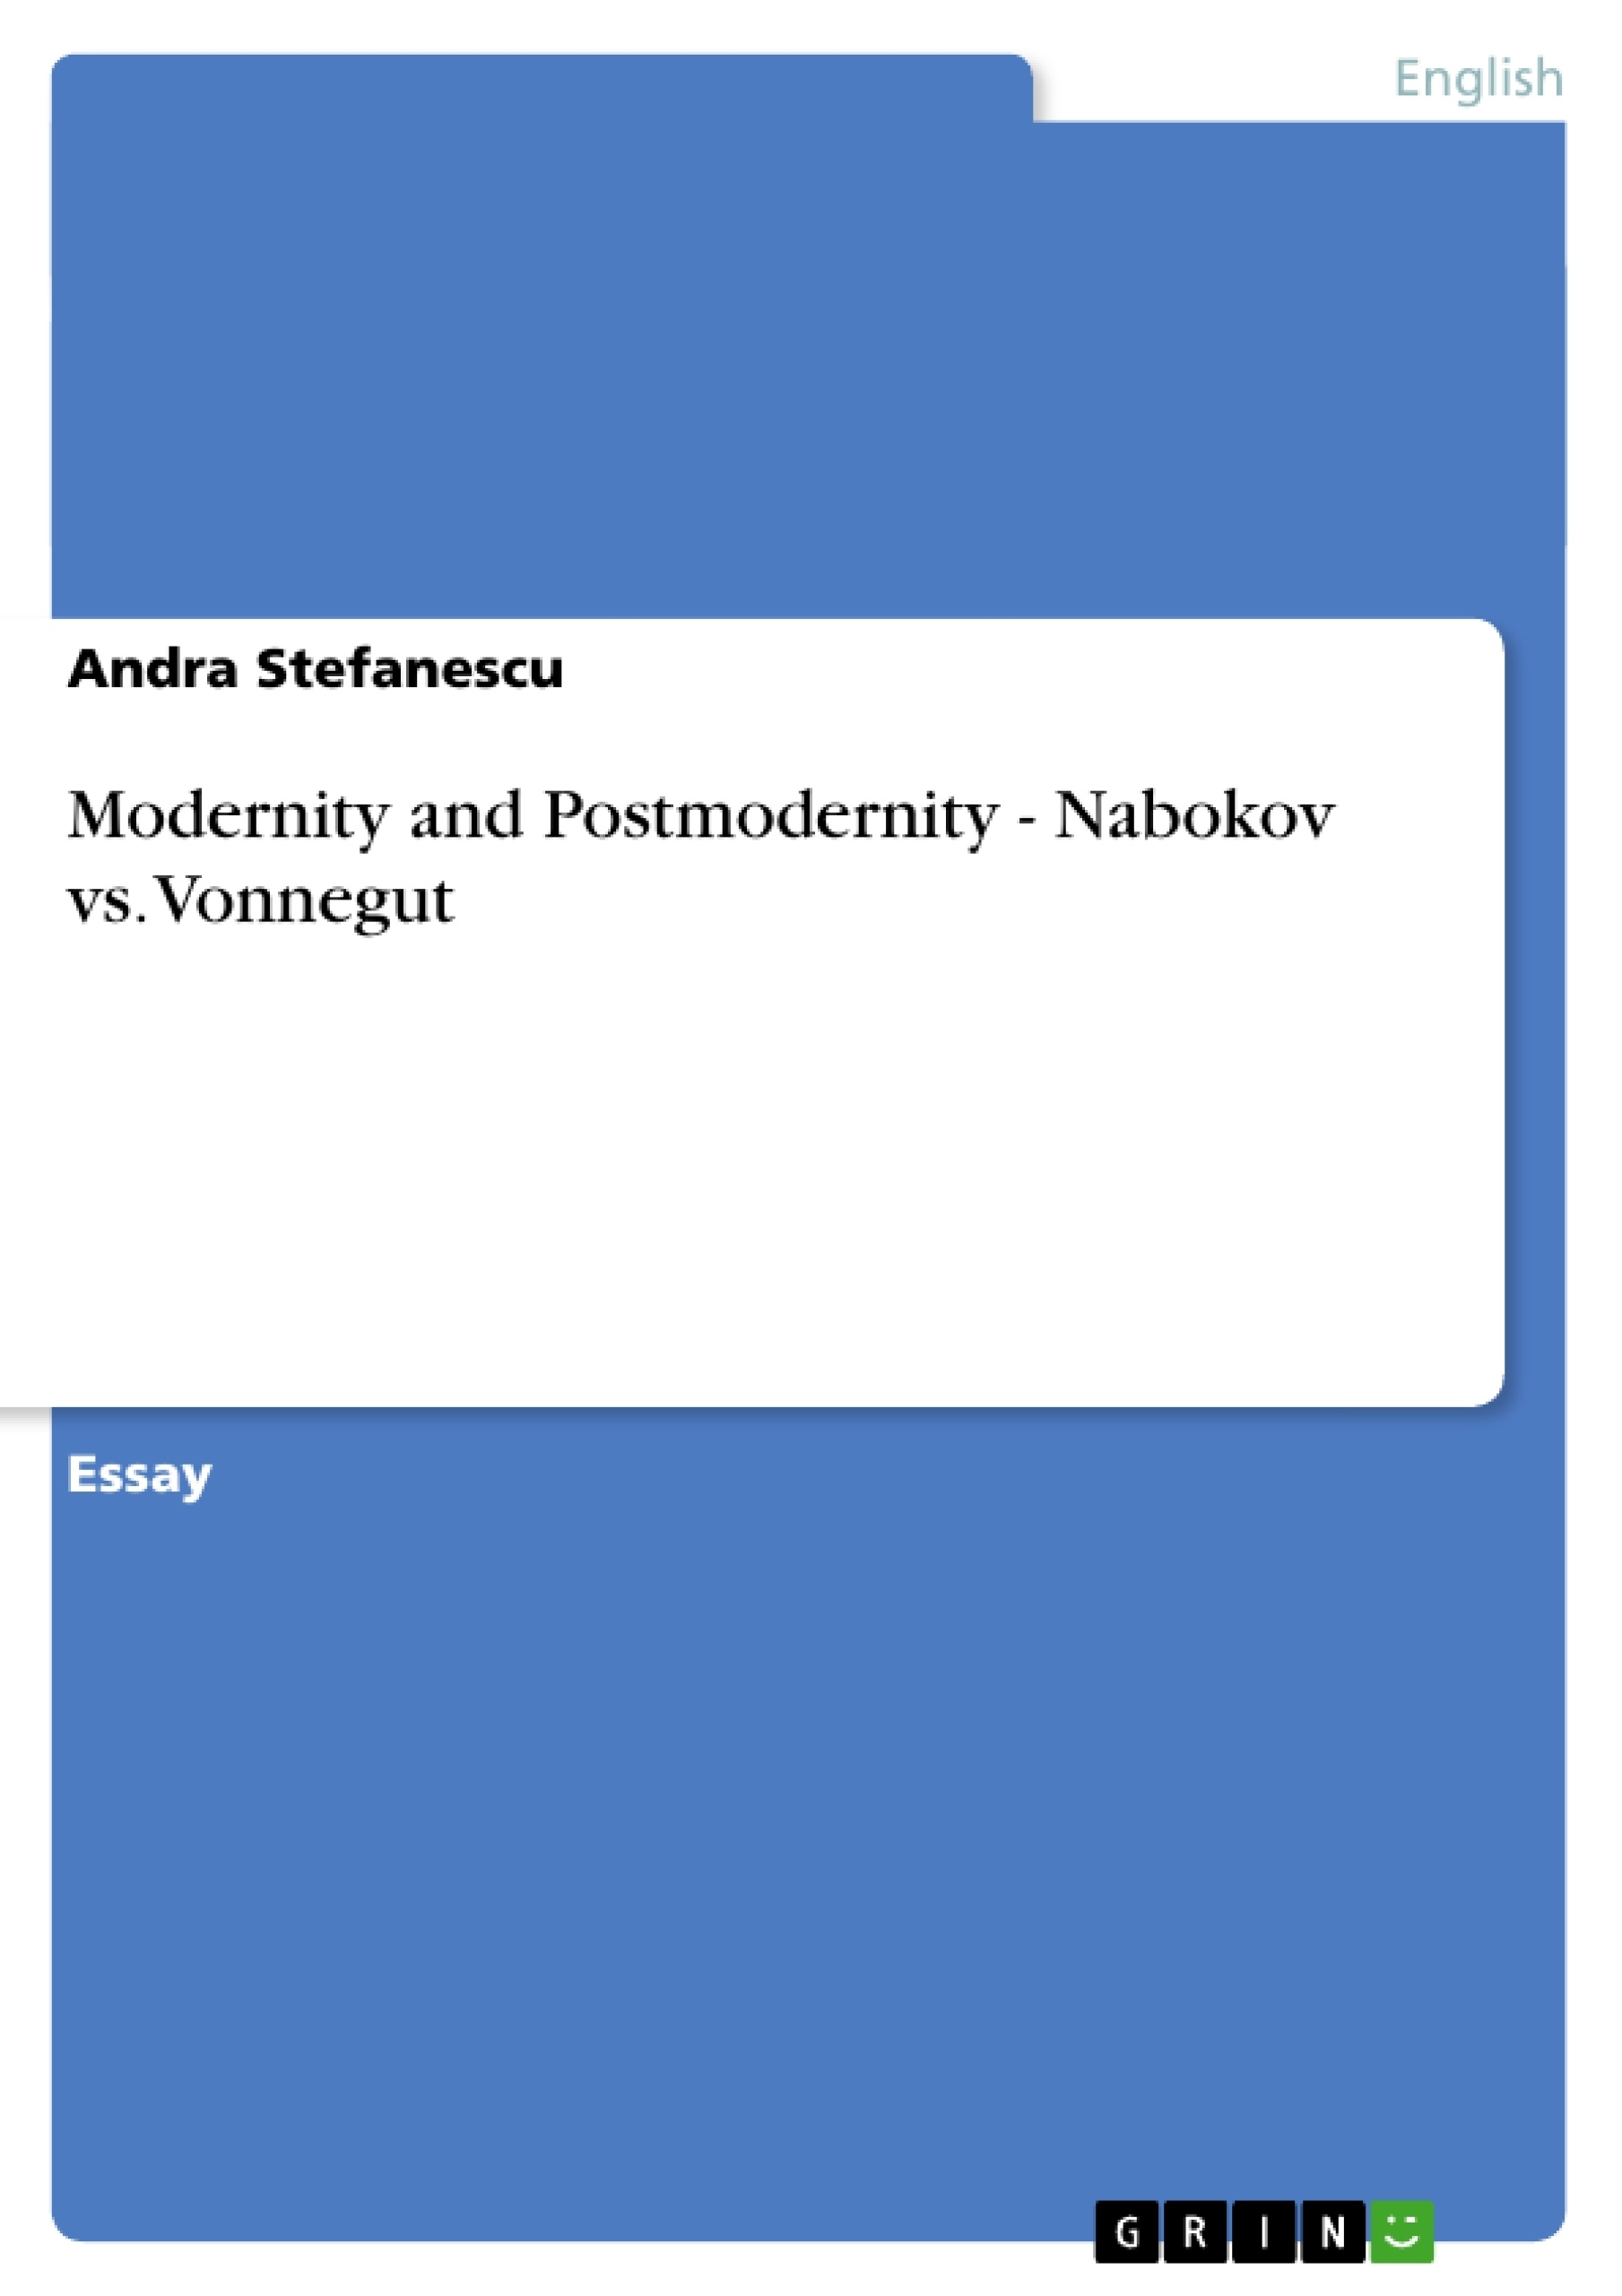 Title: Modernity and Postmodernity - Nabokov vs. Vonnegut